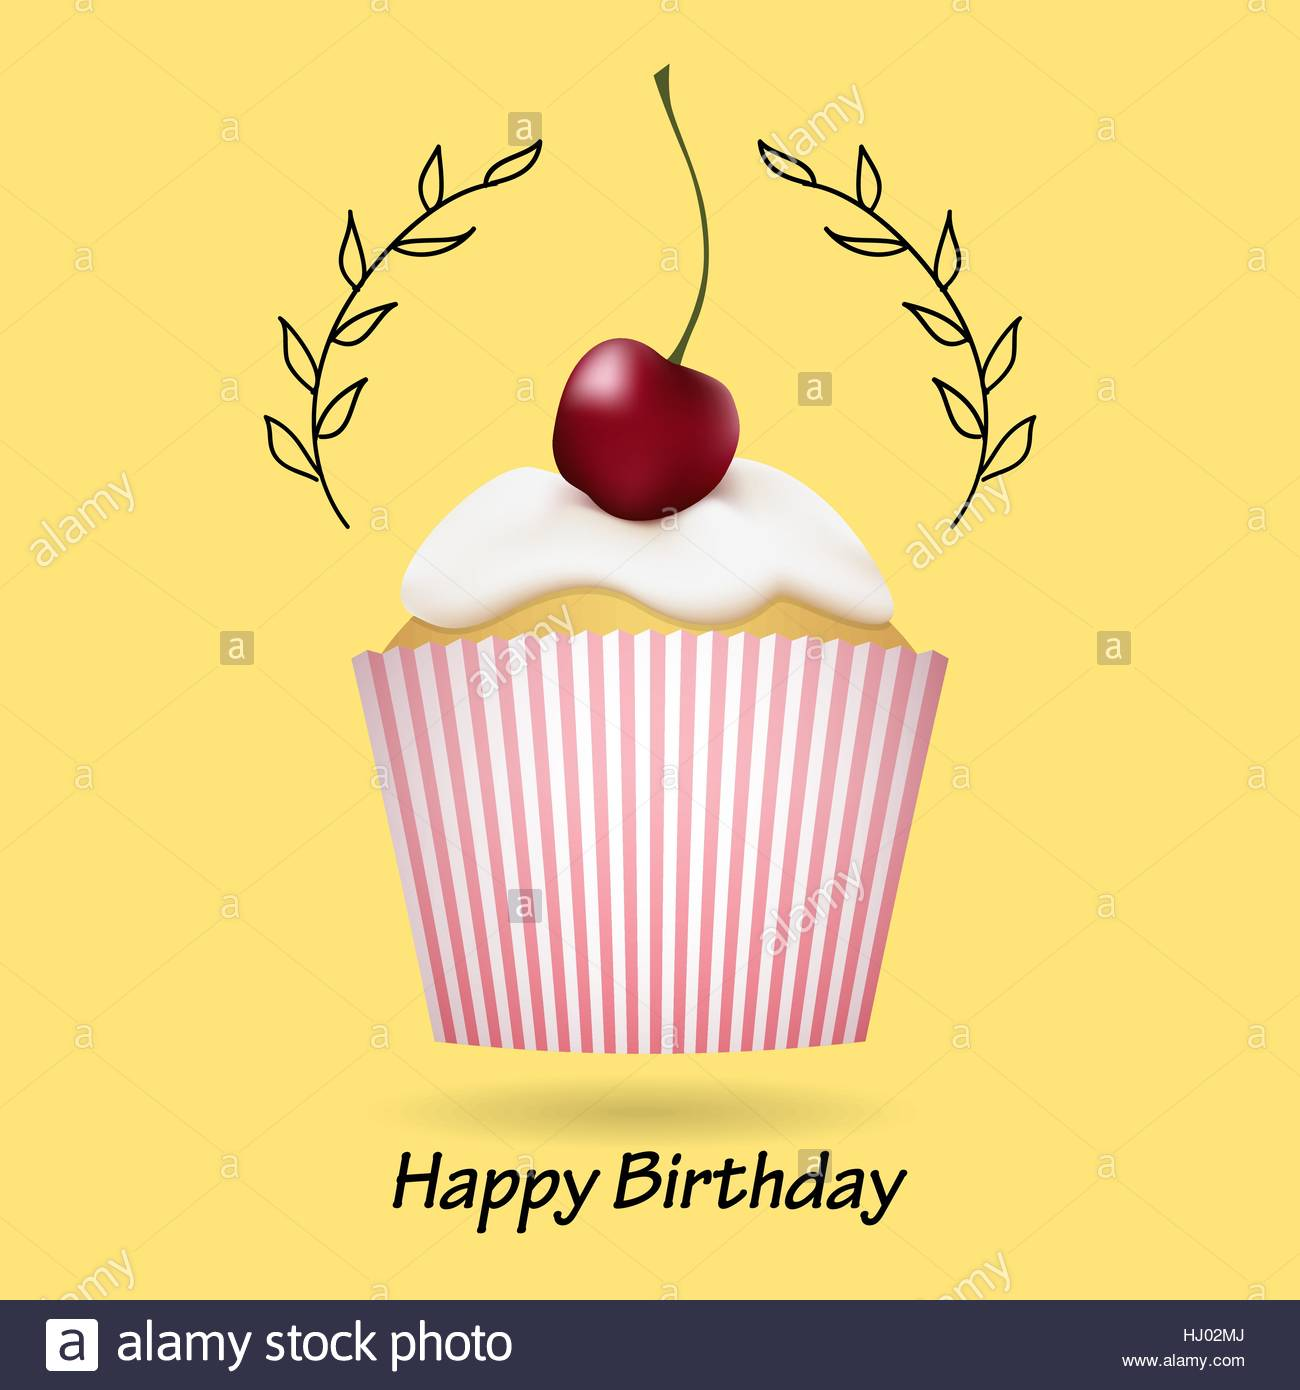 Happy Birthday Greeting Card With Cute Cupcake And Cherry Stock